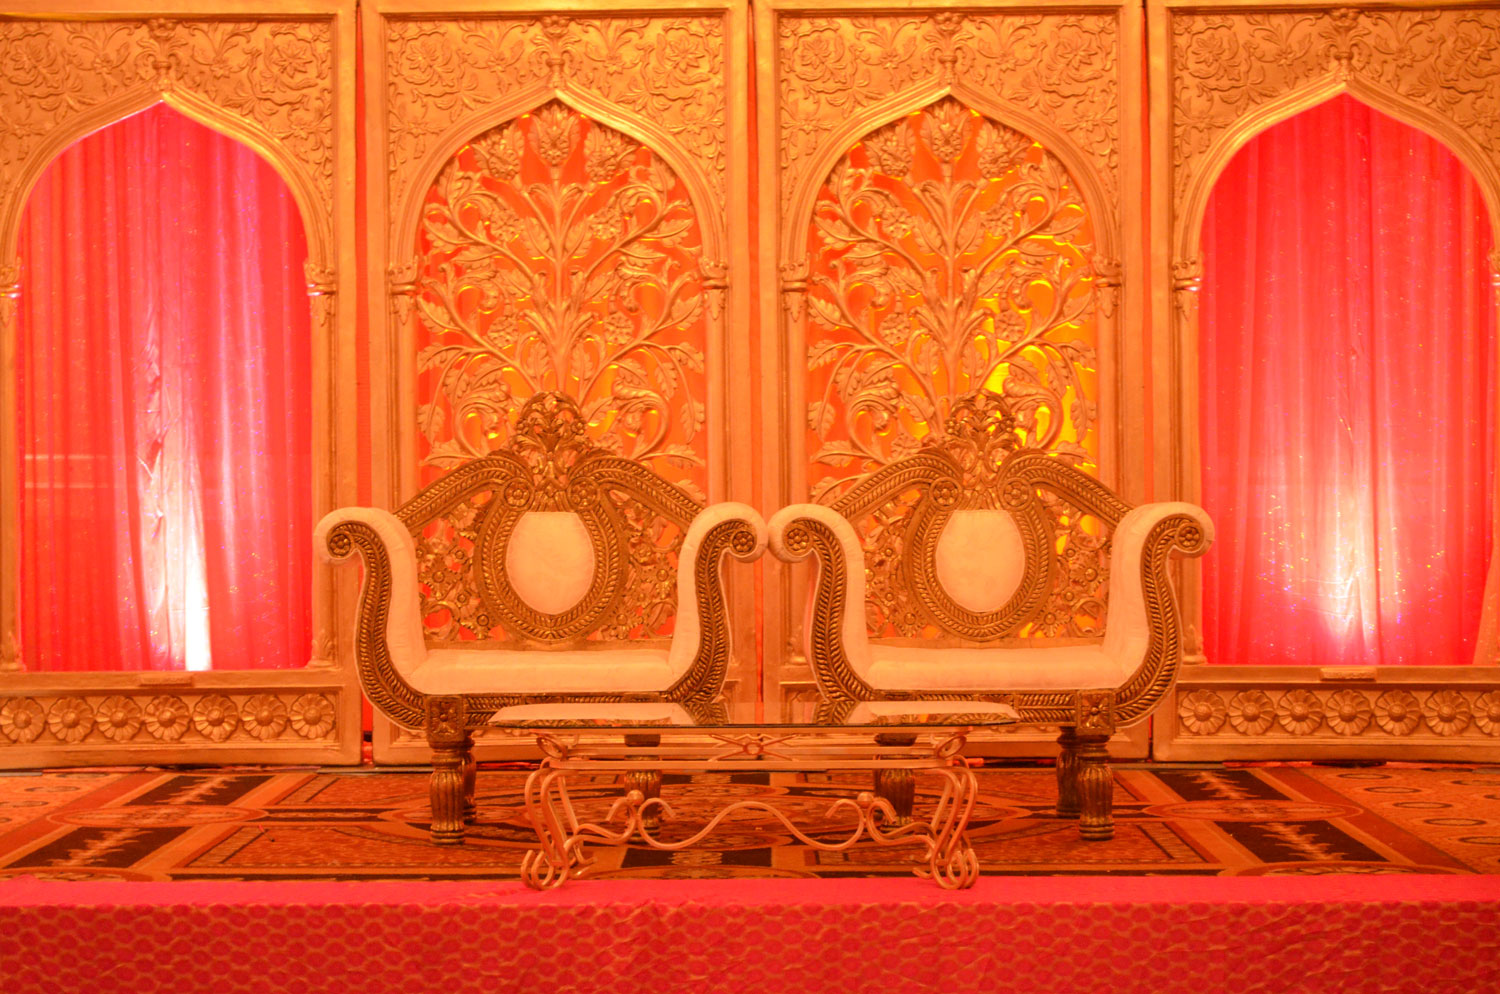 Indian wedding decor - pakistani wedding - nikkah decor